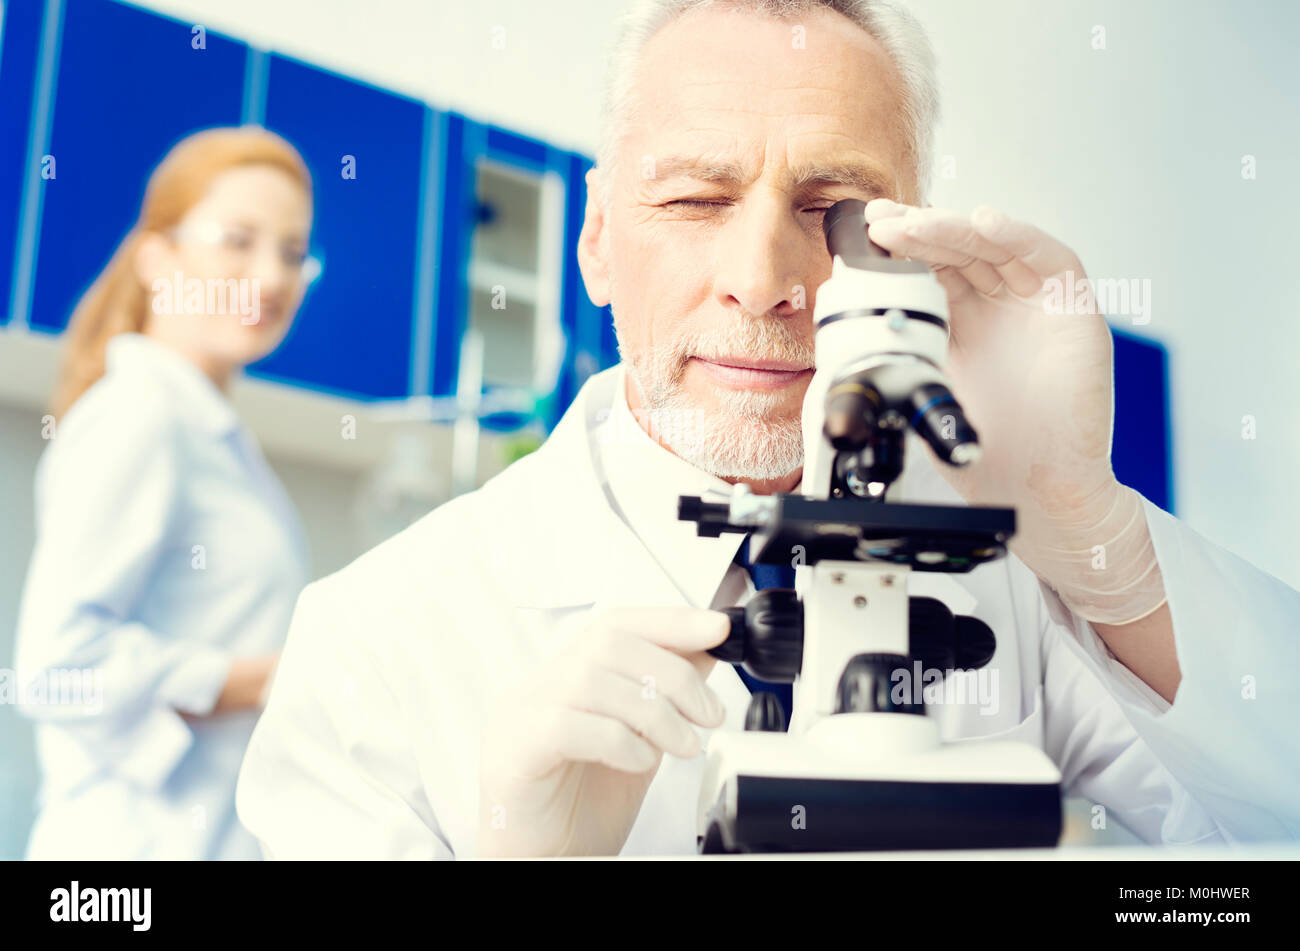 Positive minded researcher looking at sample under microscope - Stock Image